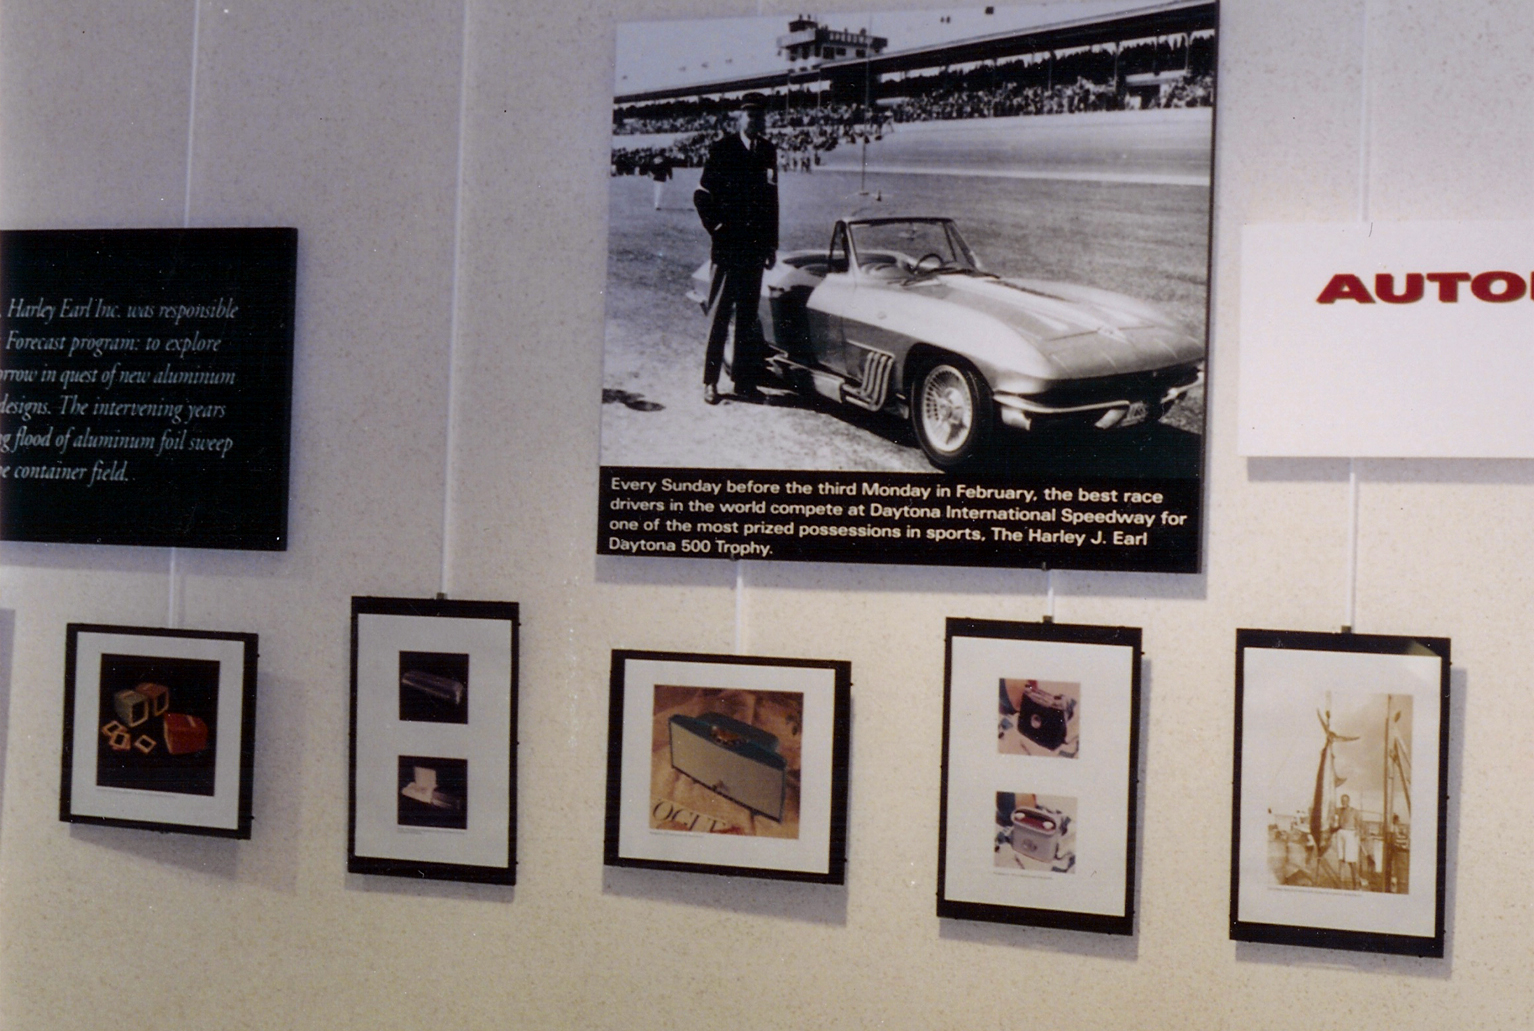 HJE's personal 1963 Corvette shown in Harley Earl photo exhibit